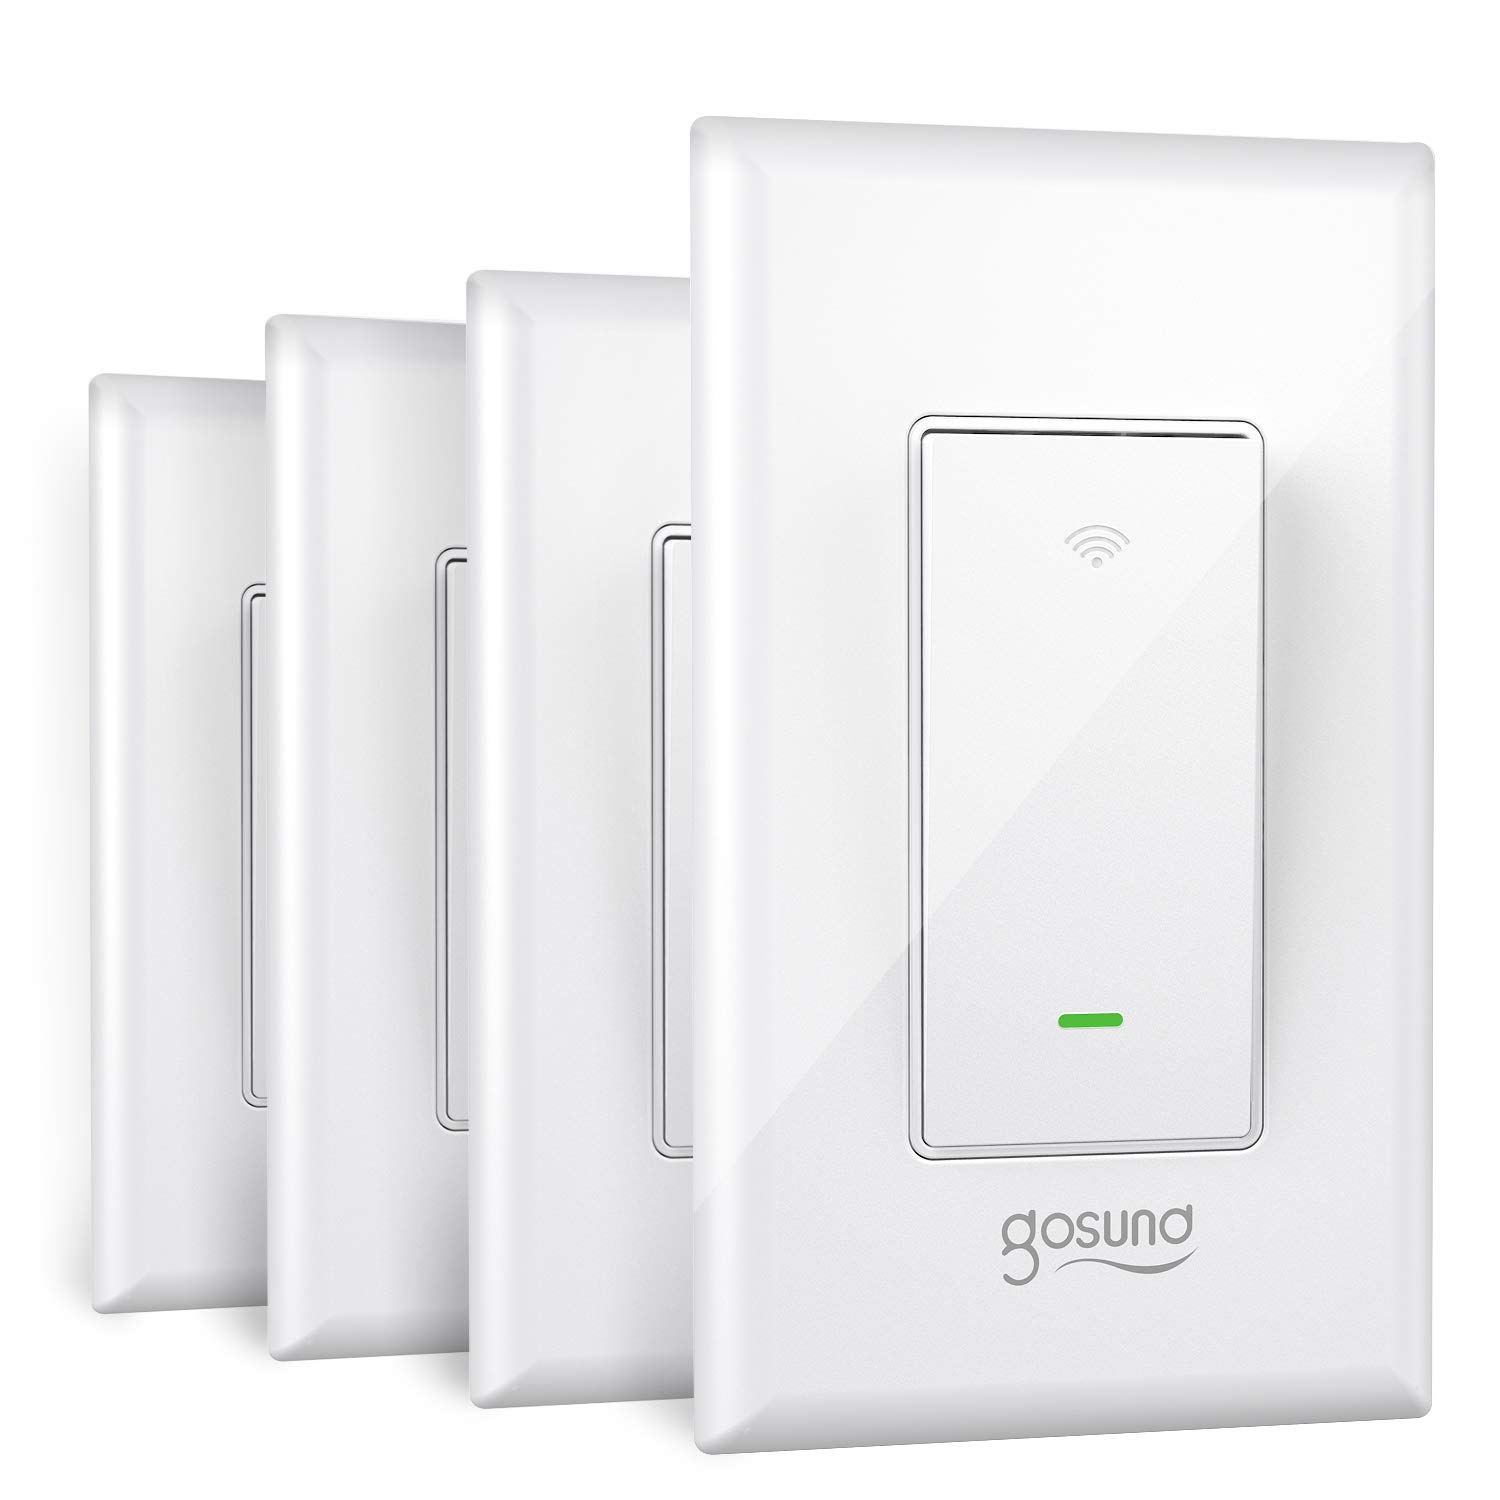 Gosund Smart Switch, 3 Way WiFi Light Switch Works with Alexa and Google Home, Schedule Timer, Neutral Wire Required, Single-Pole and 3-Way Installation, No Hub Required, ETL and FCC Listed (4-Pack)